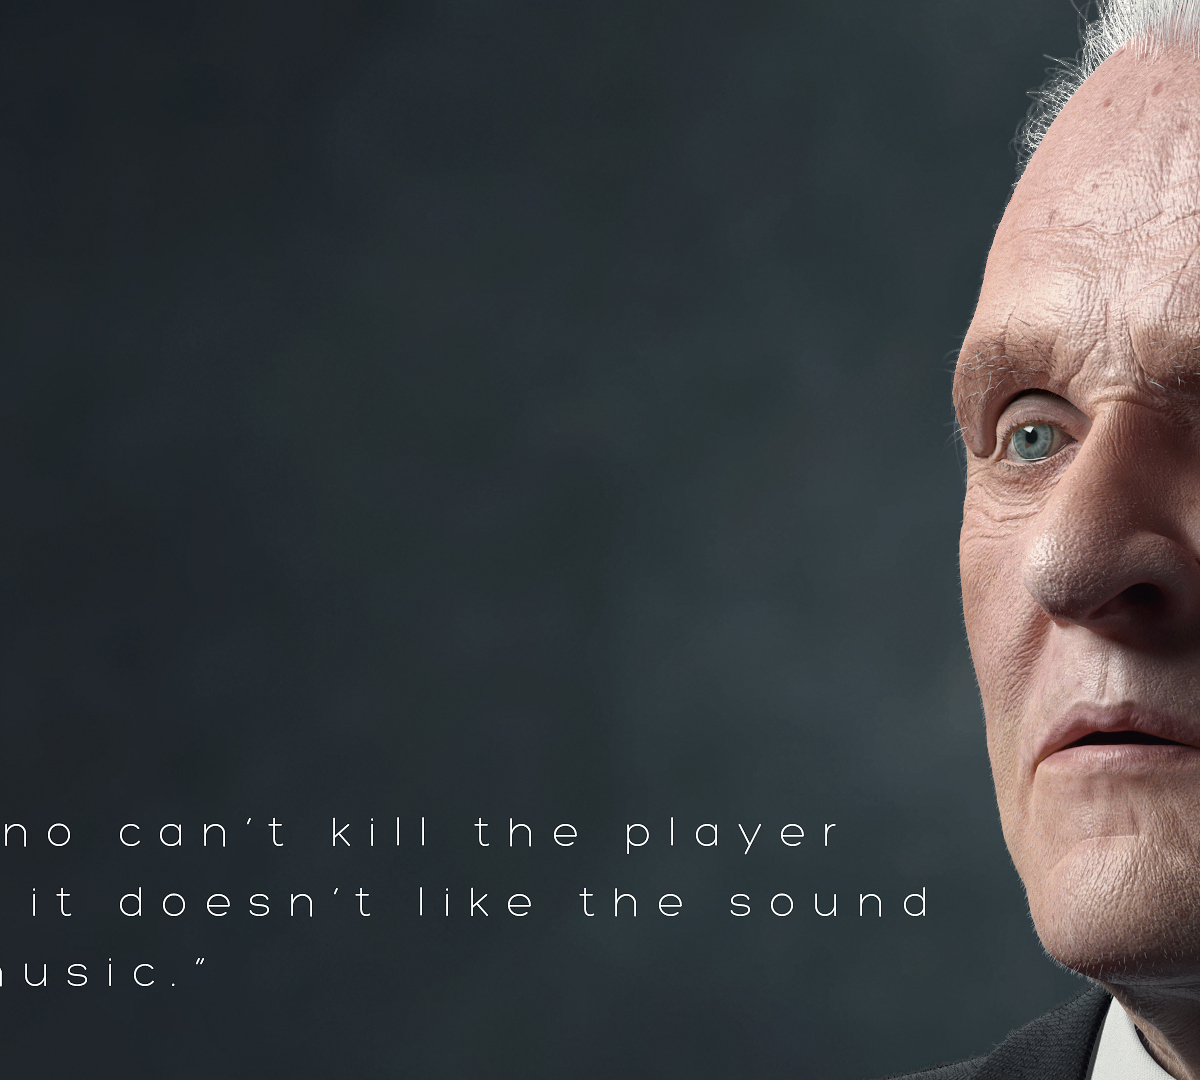 anthony_hopkins_by_hossimo_bg.jpg